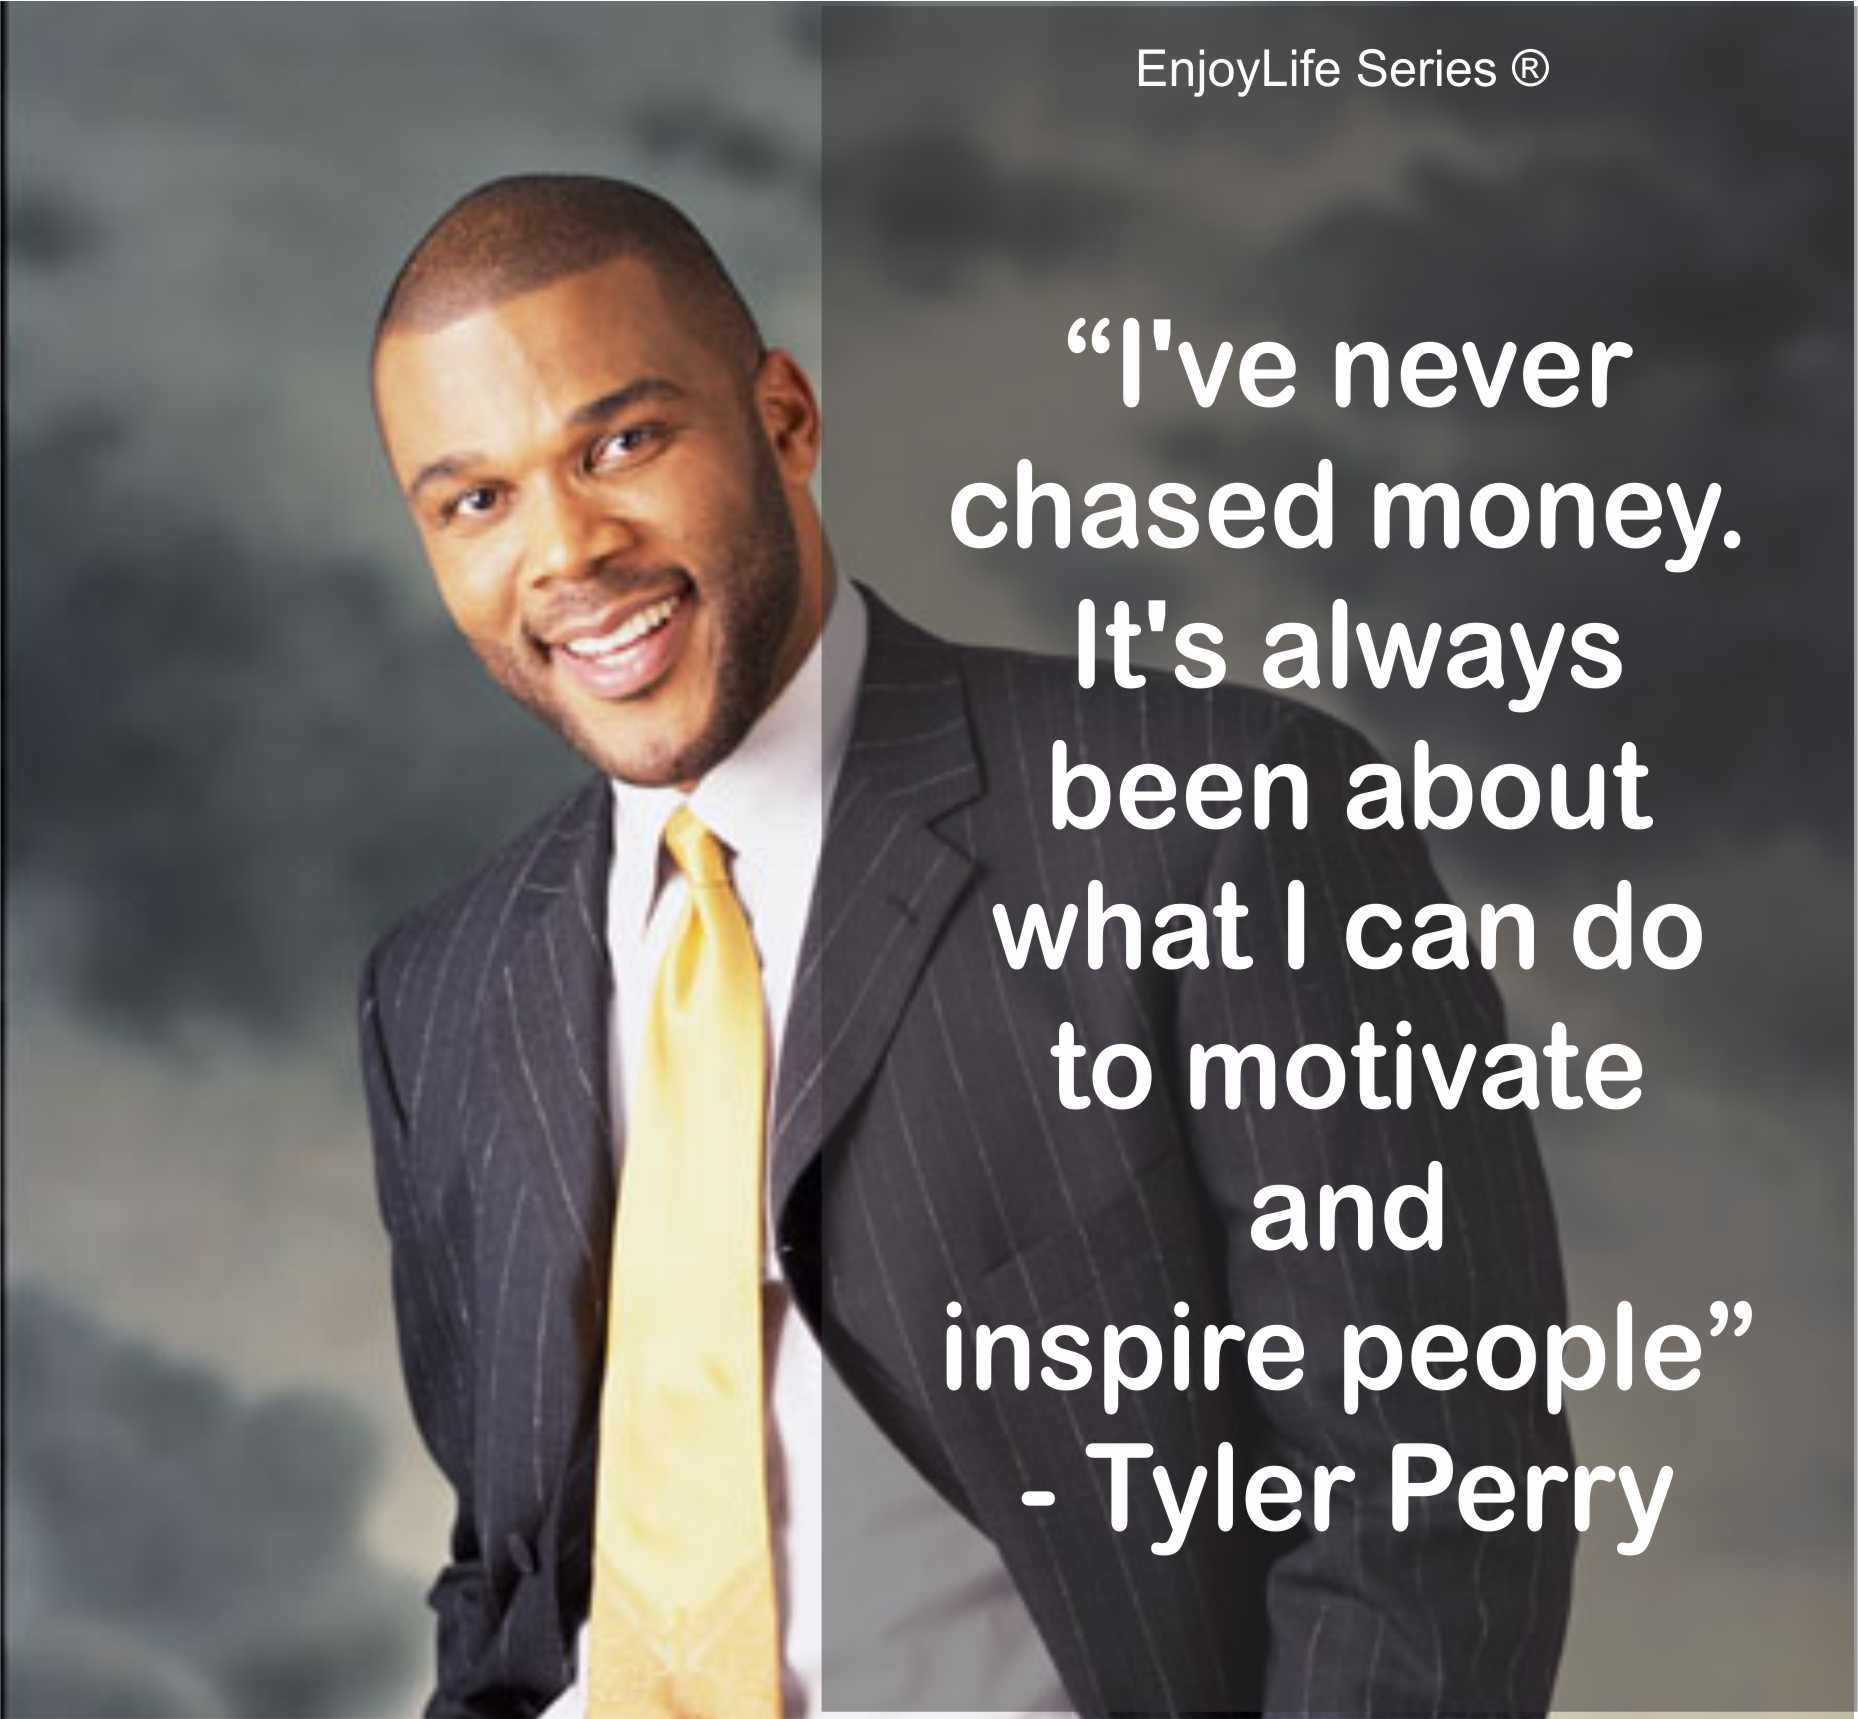 Tyler Perry's quote #3